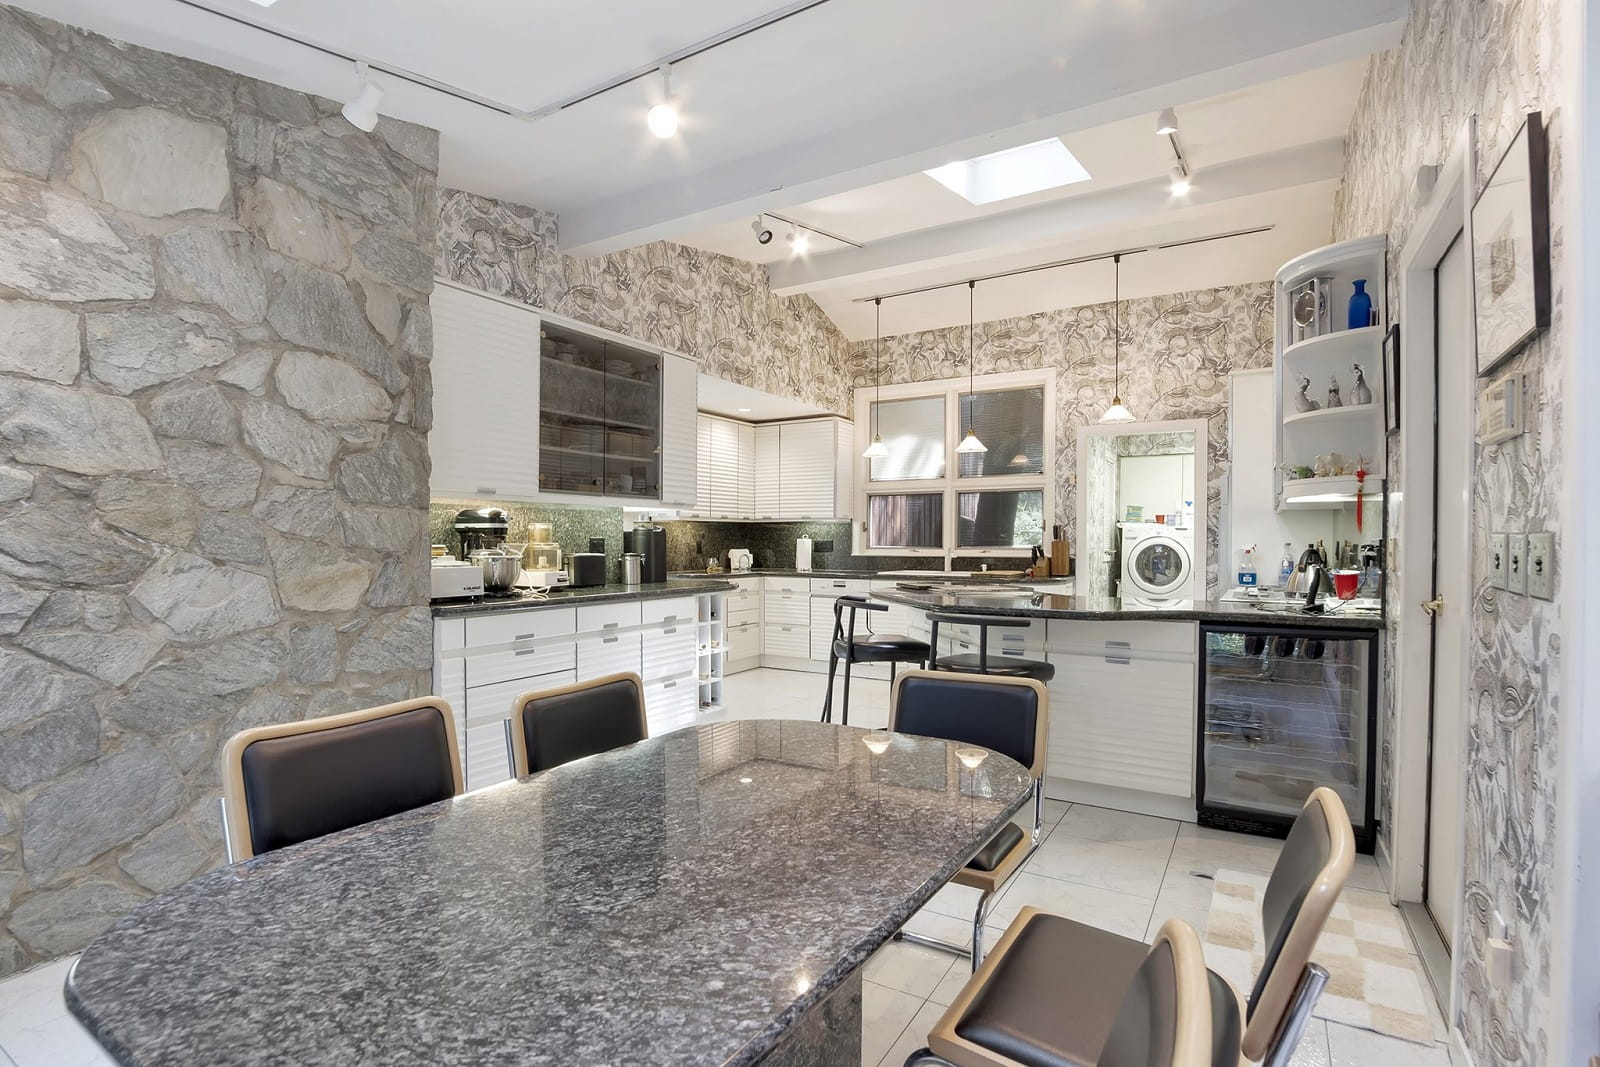 Real Estate Photography in Staten Island - New York - NY - USA - Kitchen View